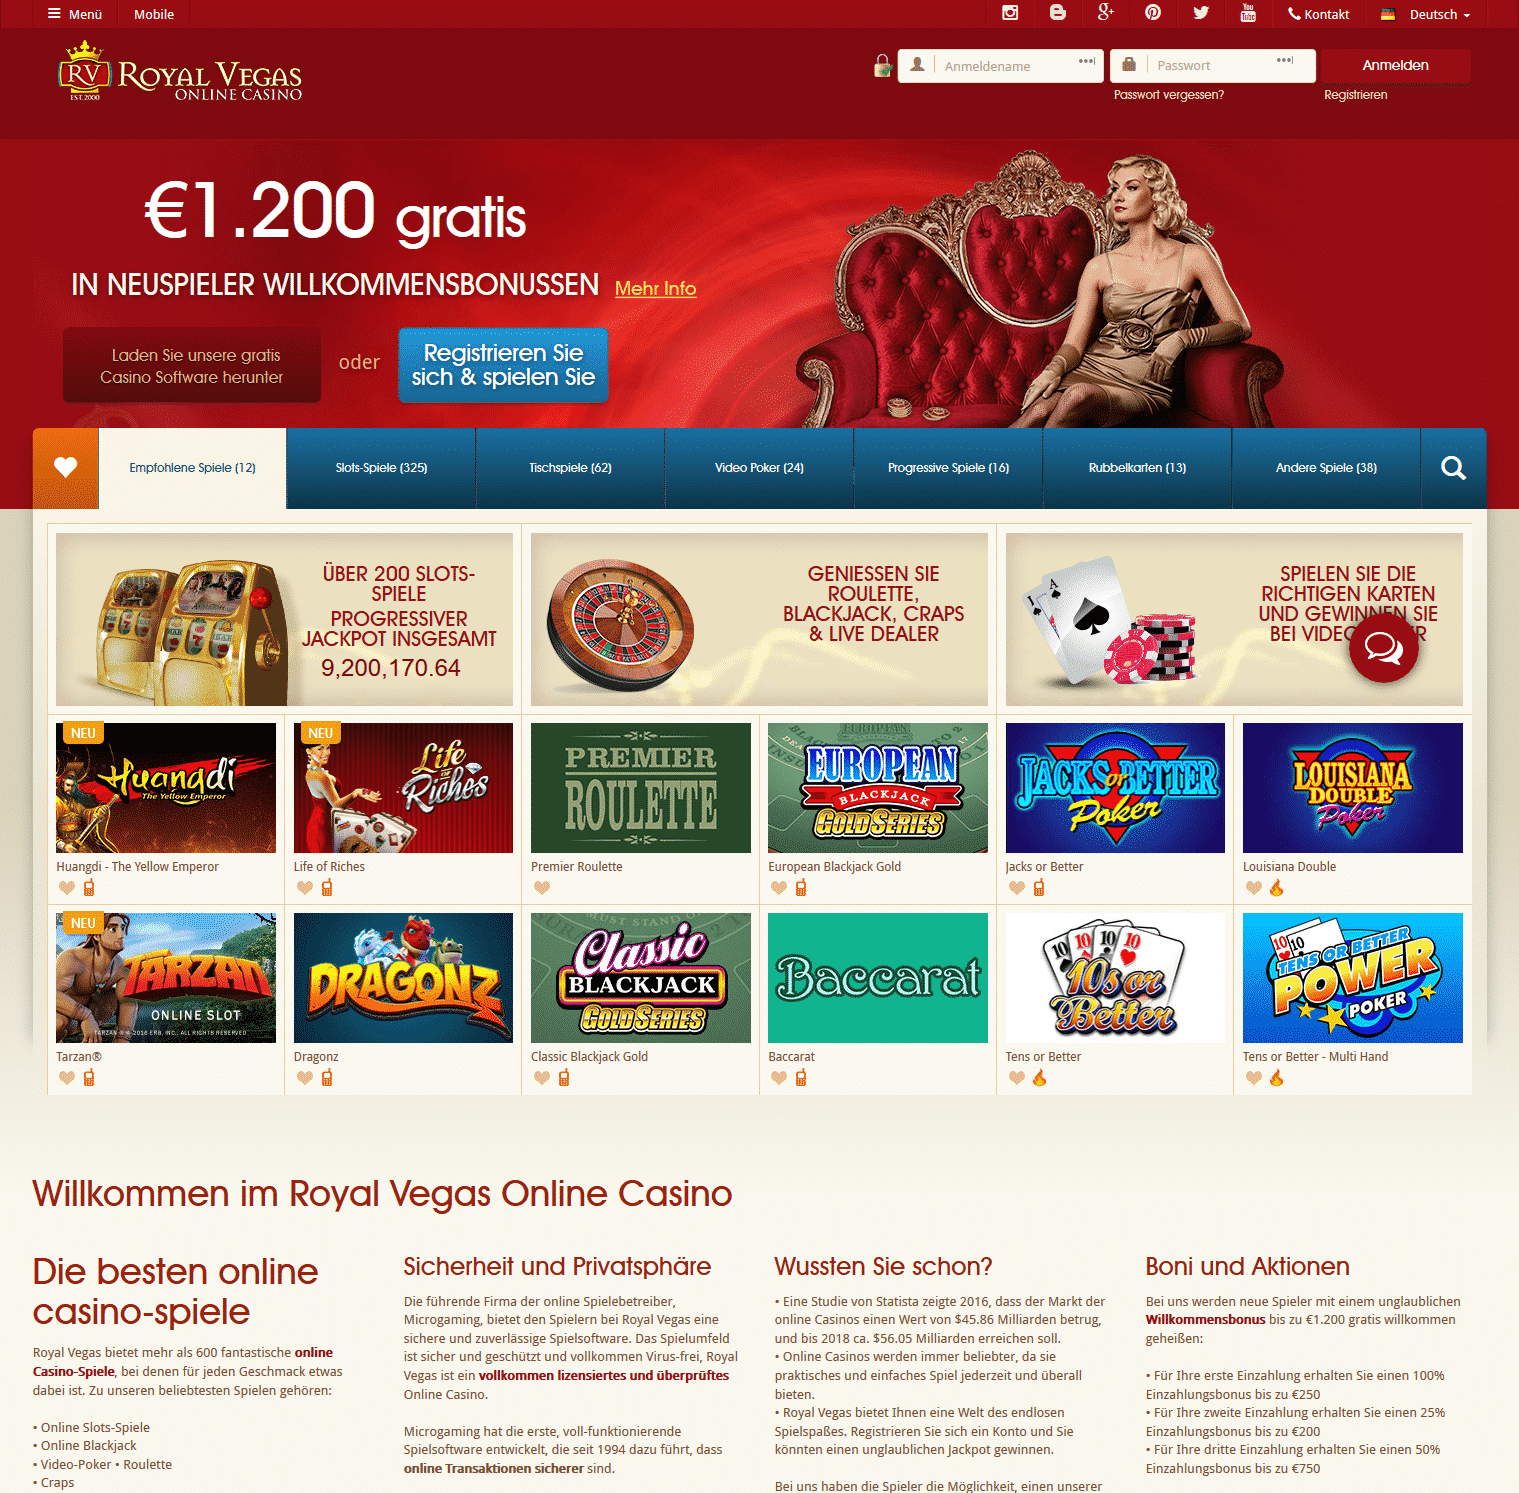 online casino software hearts spielen